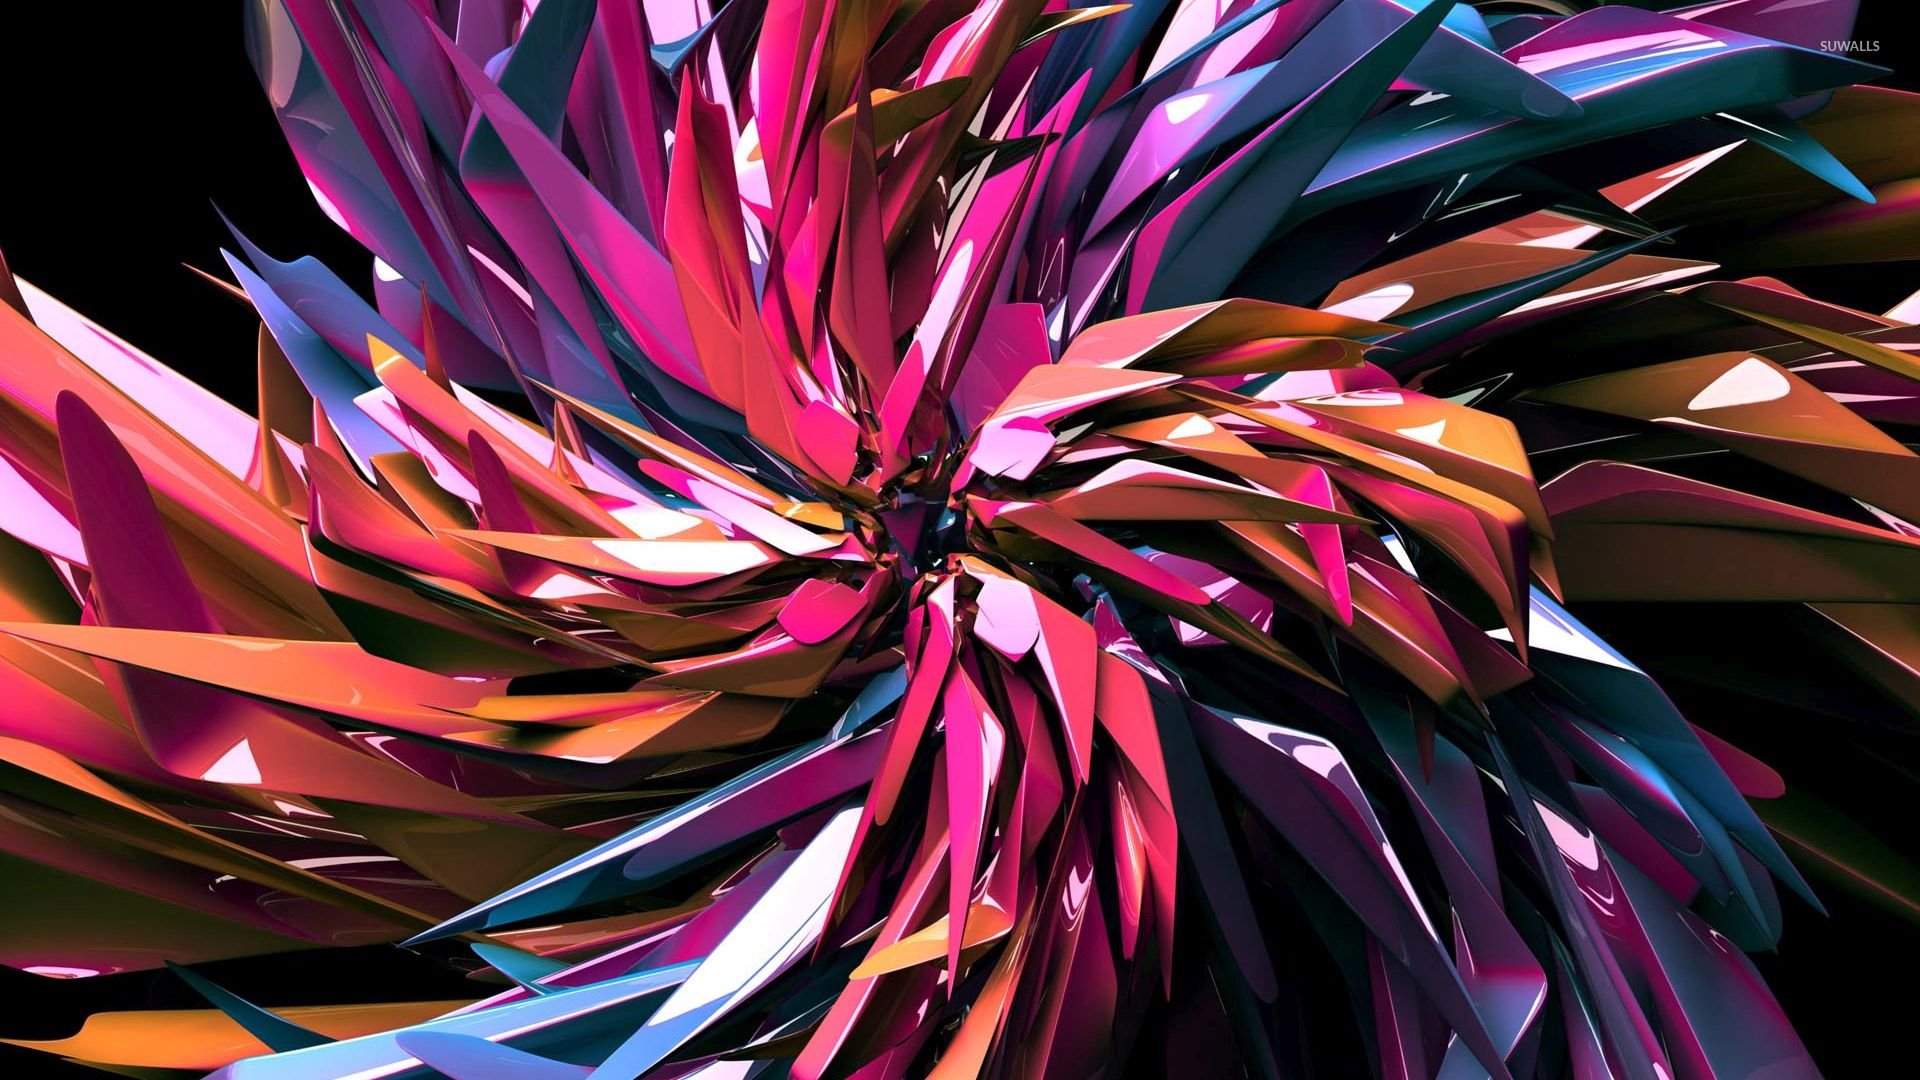 Abstraction, Wallpaper Abstract For Desktop High Quality